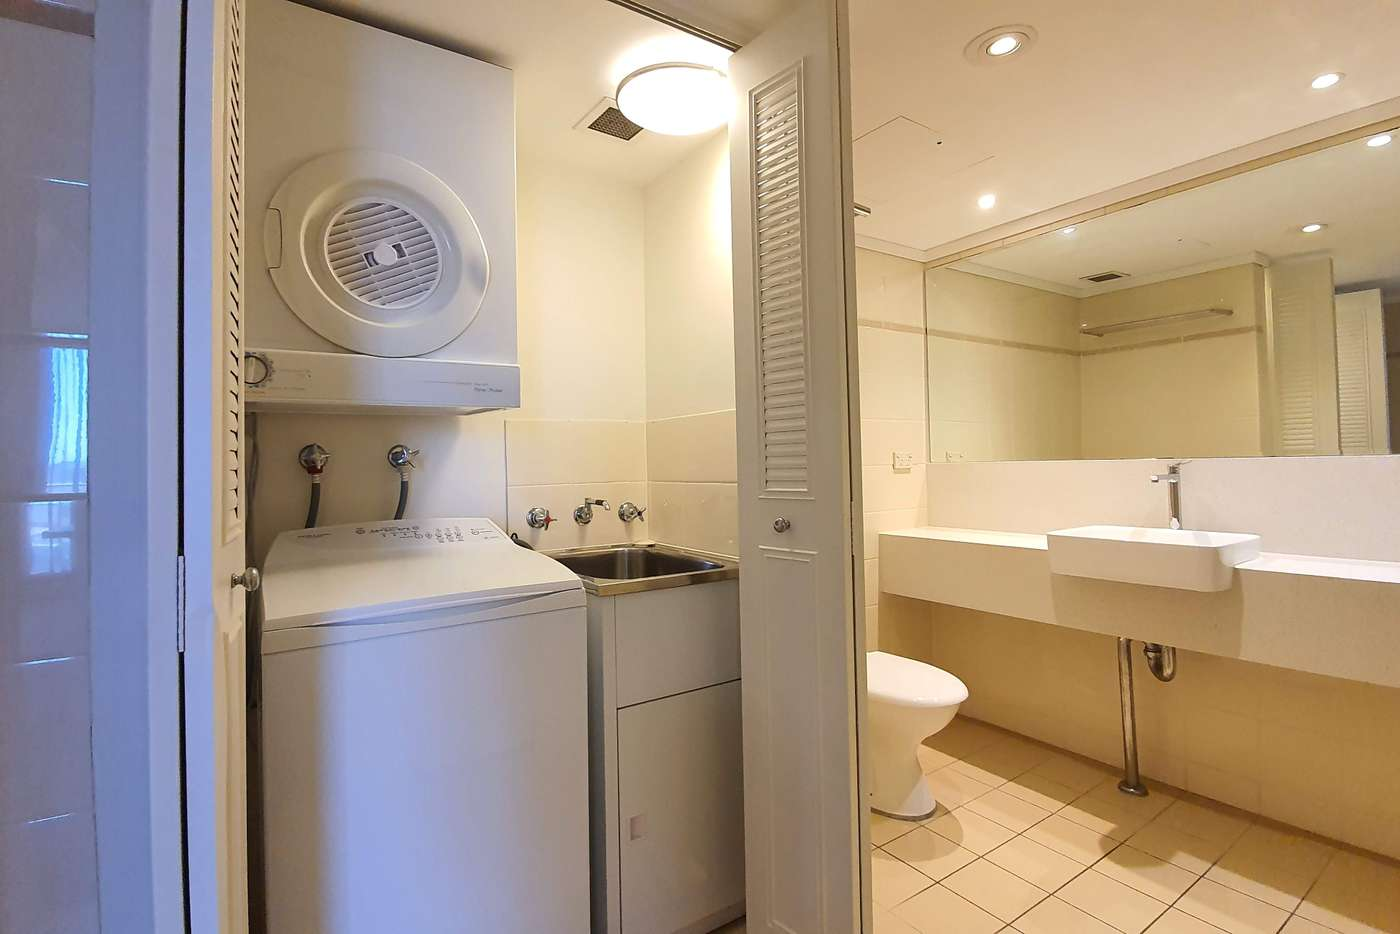 Sixth view of Homely apartment listing, 503/10 Brown Street, Chatswood NSW 2067